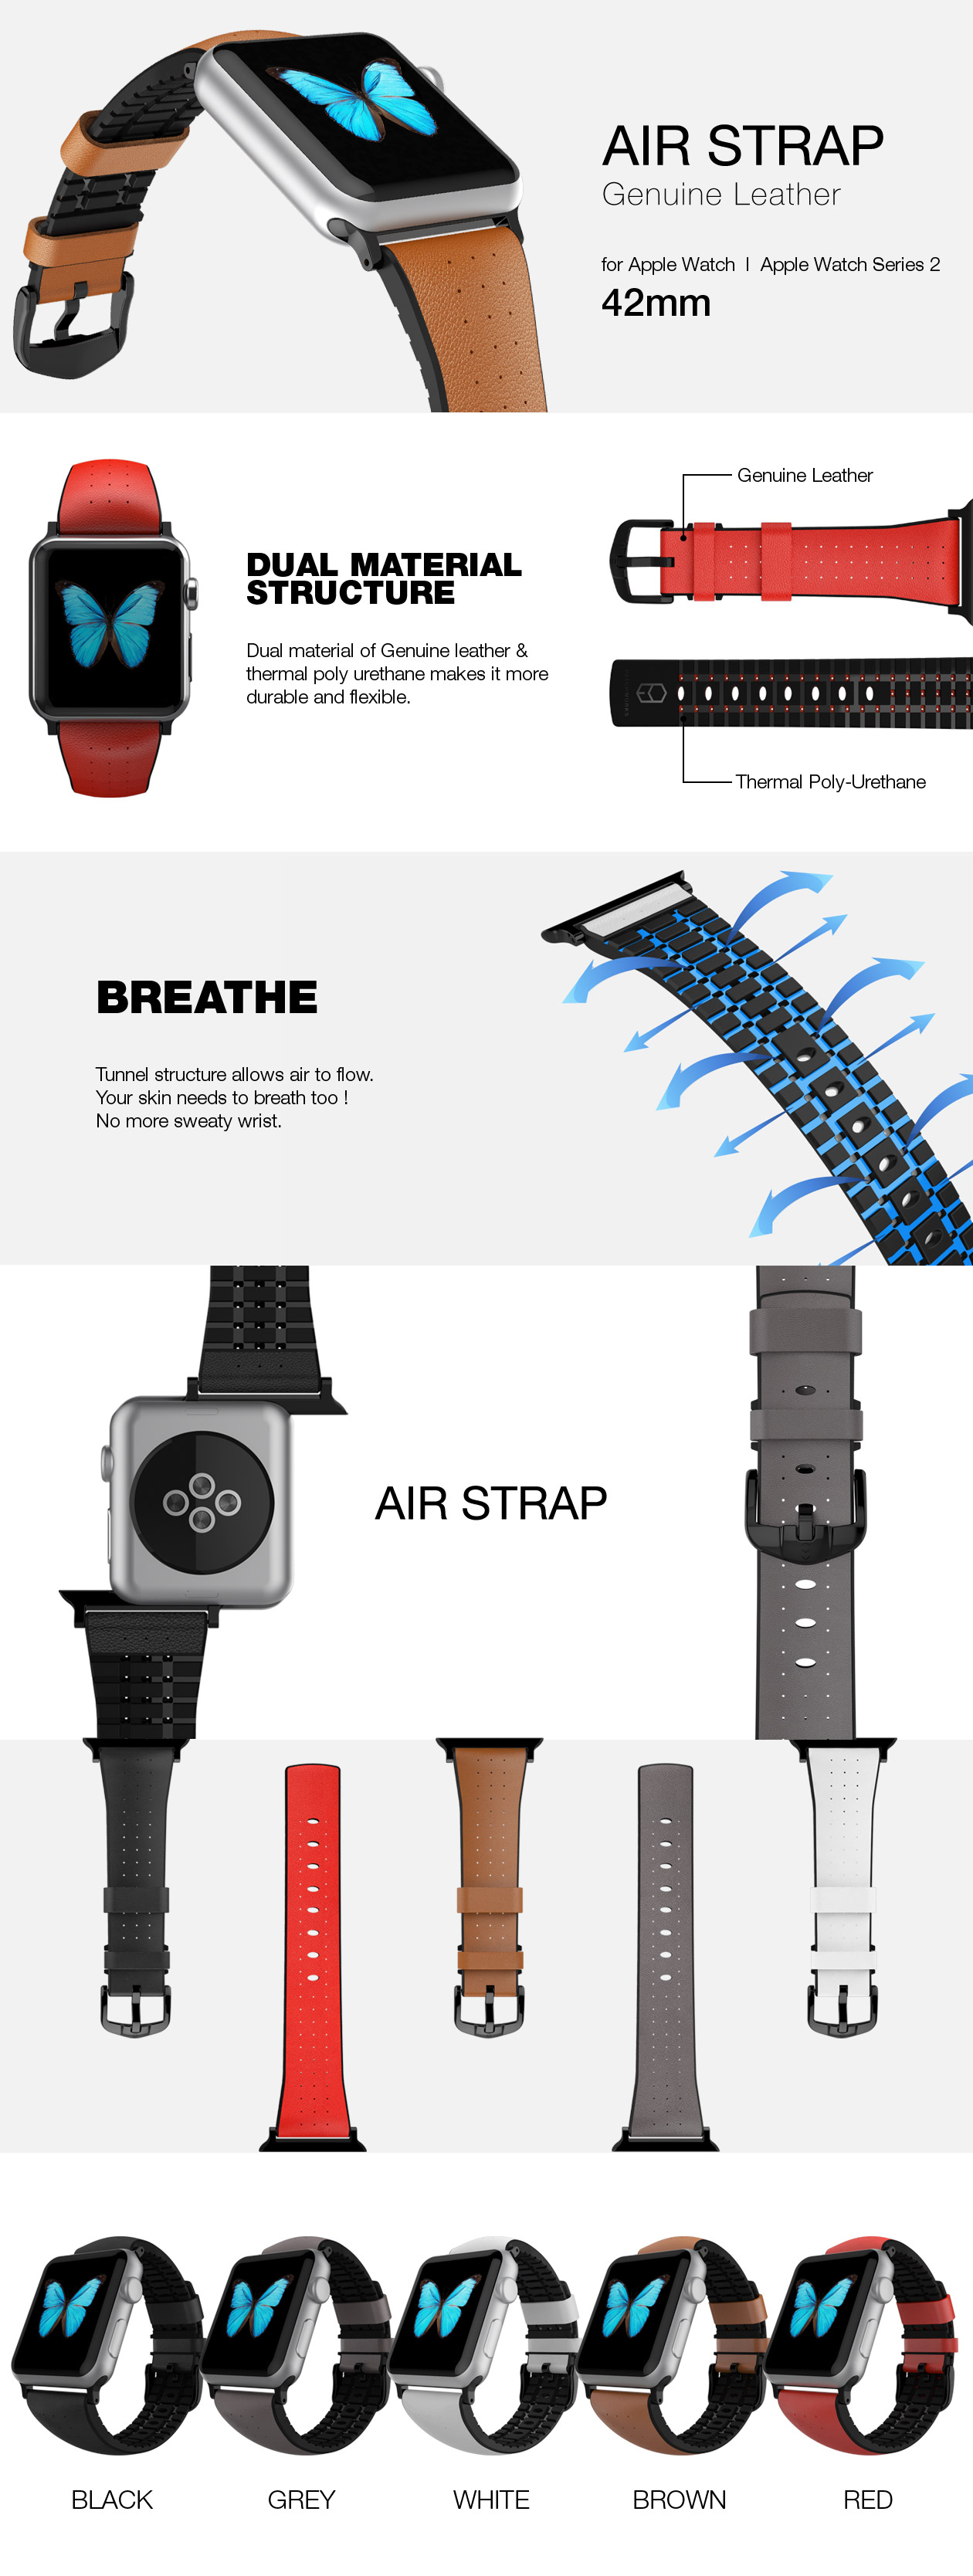 air-strap-for-appe-watch-series-2-42mm